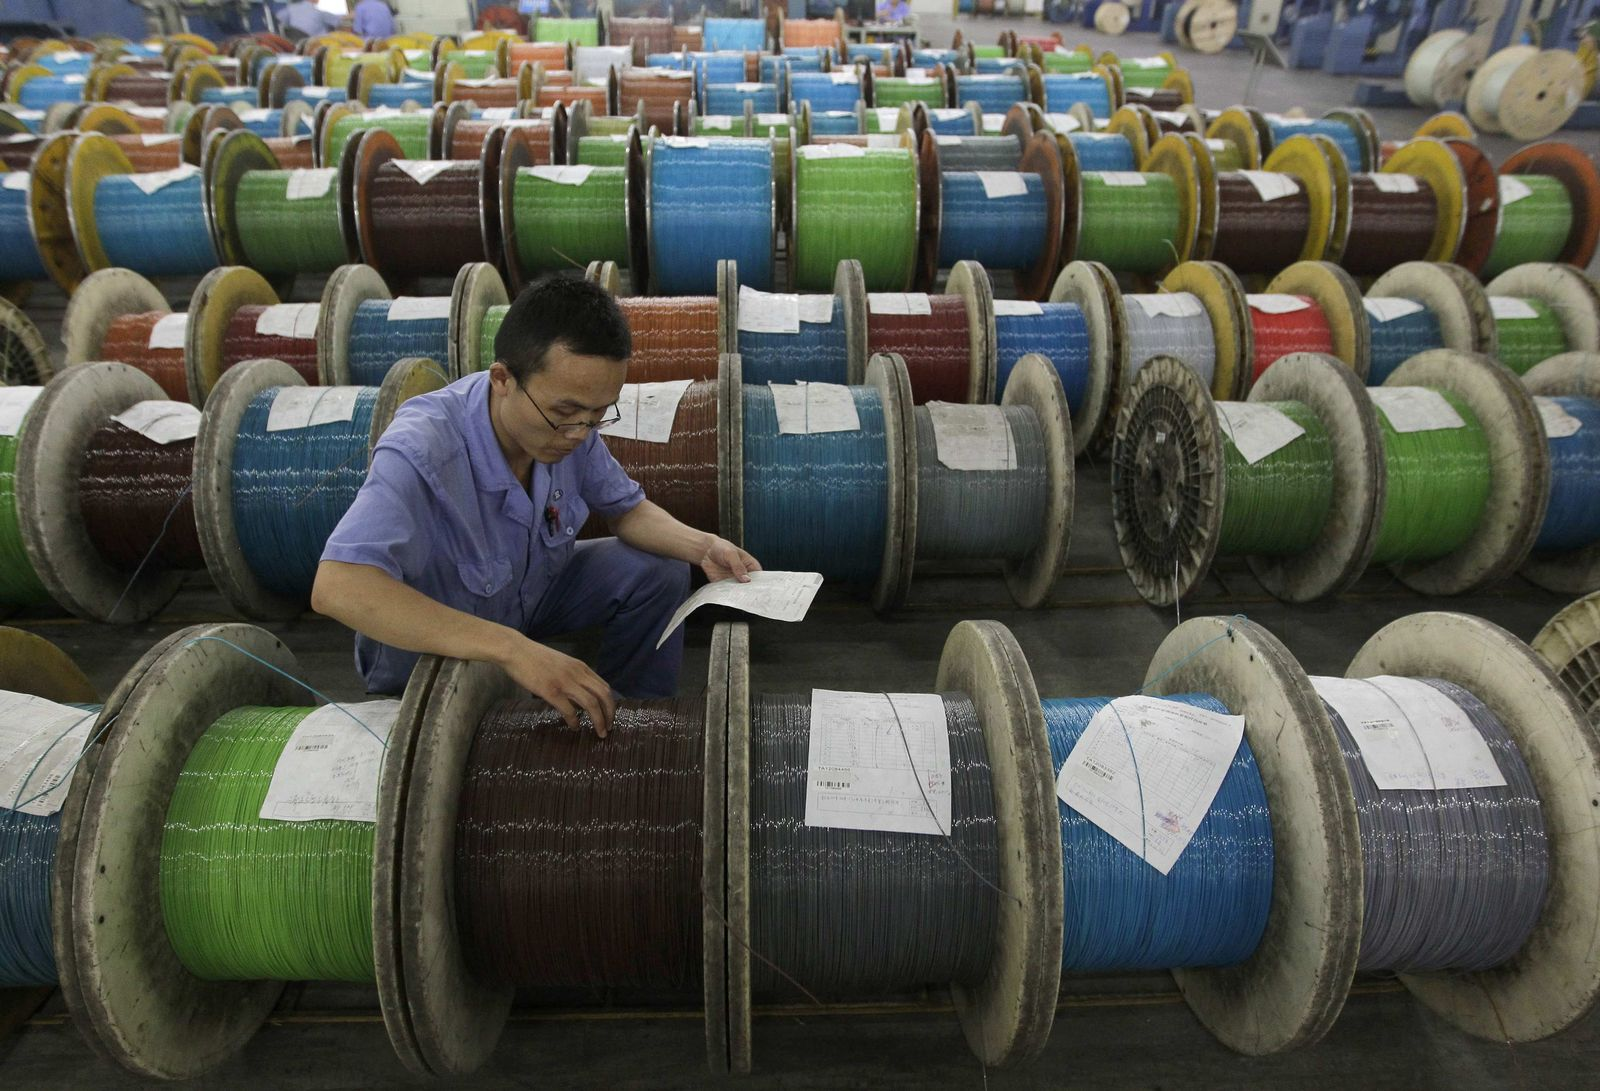 CHINA-ECONOMY/INDUSTRY wirtschaft industrie